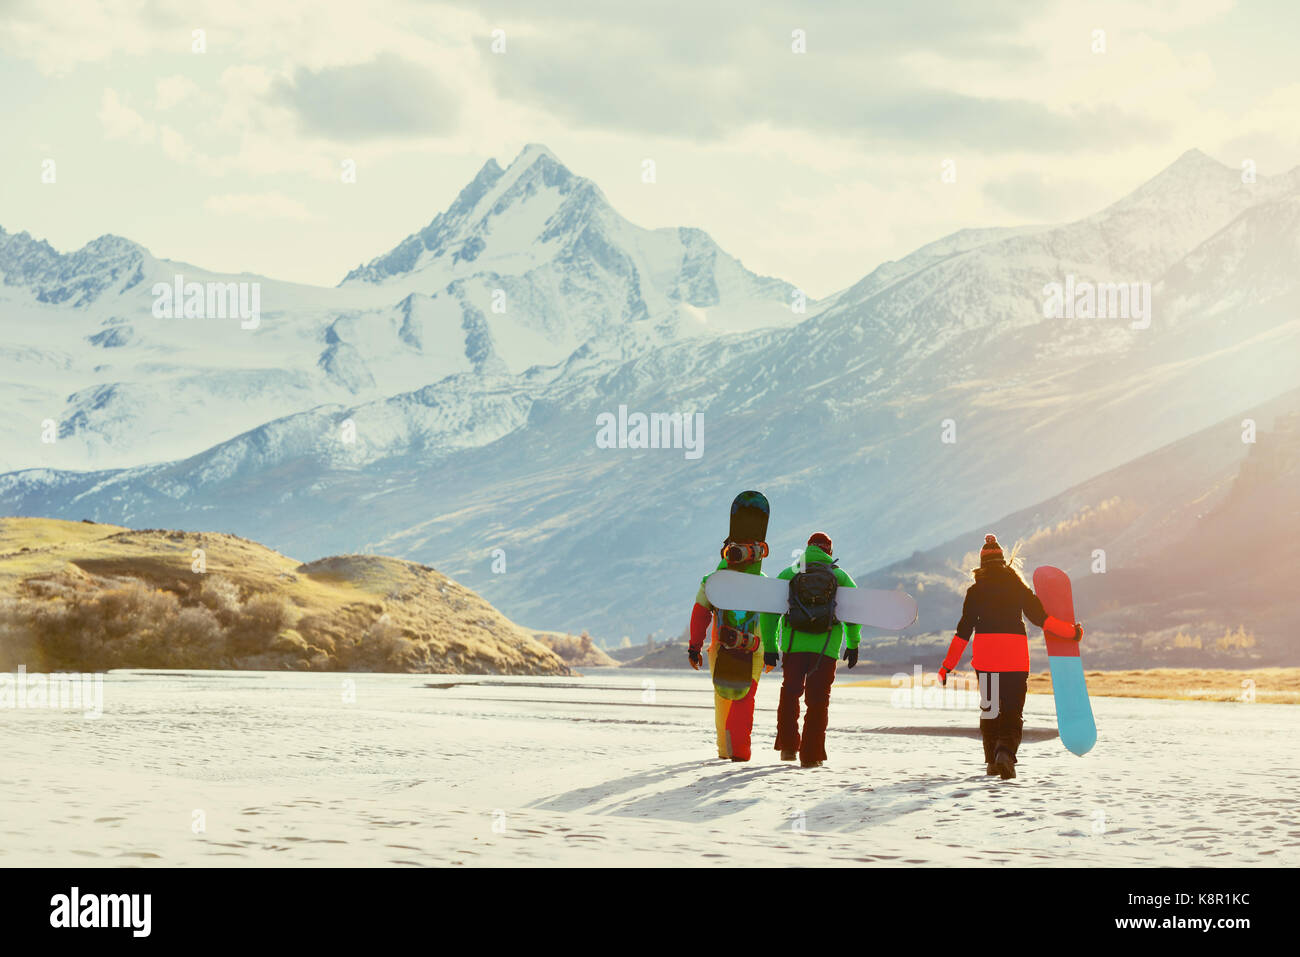 Group friends ski snowboarder concept - Stock Image